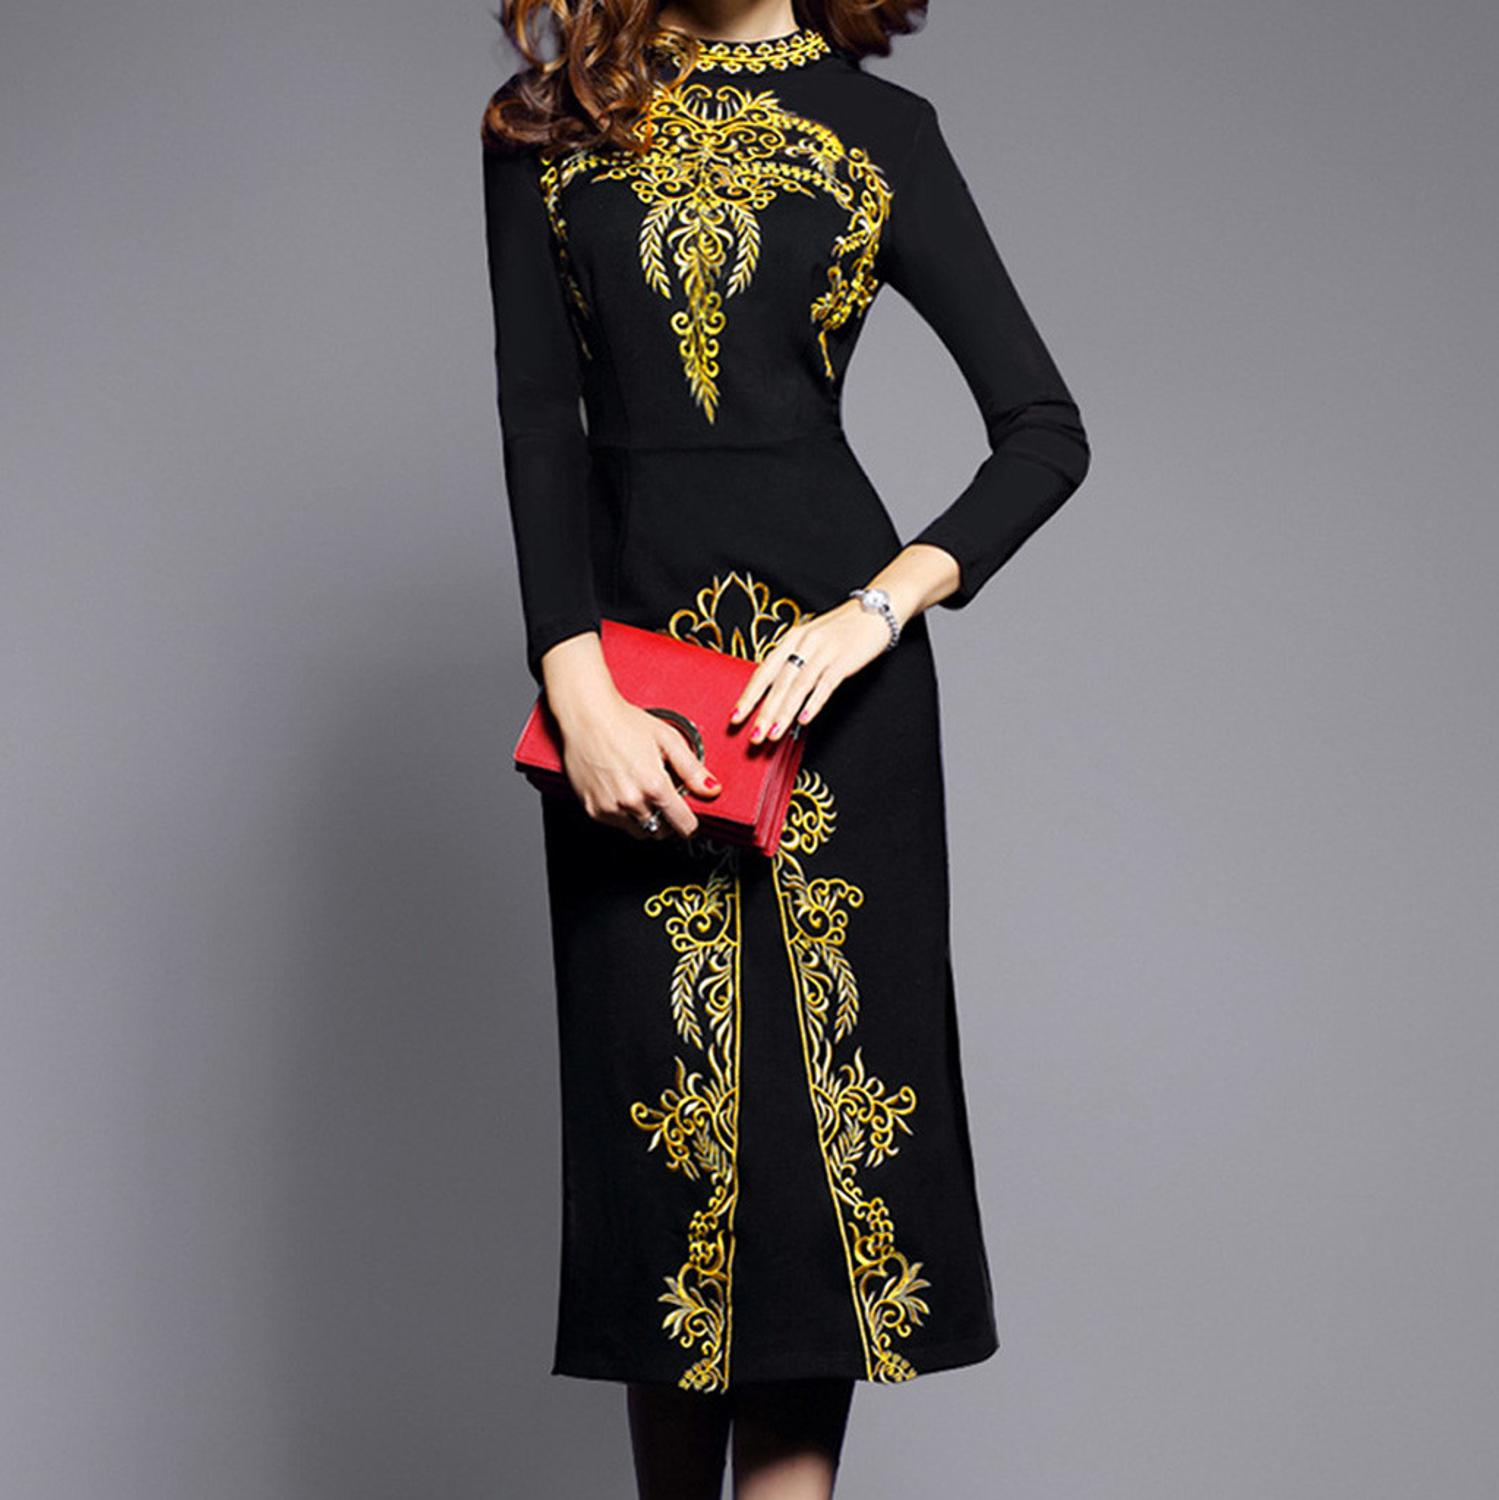 China Folk-custom Classical Dresses Women Elegant Black O-neck Zipper Long Sleeve Mid-Calf Dress 2020 New Spring Dress